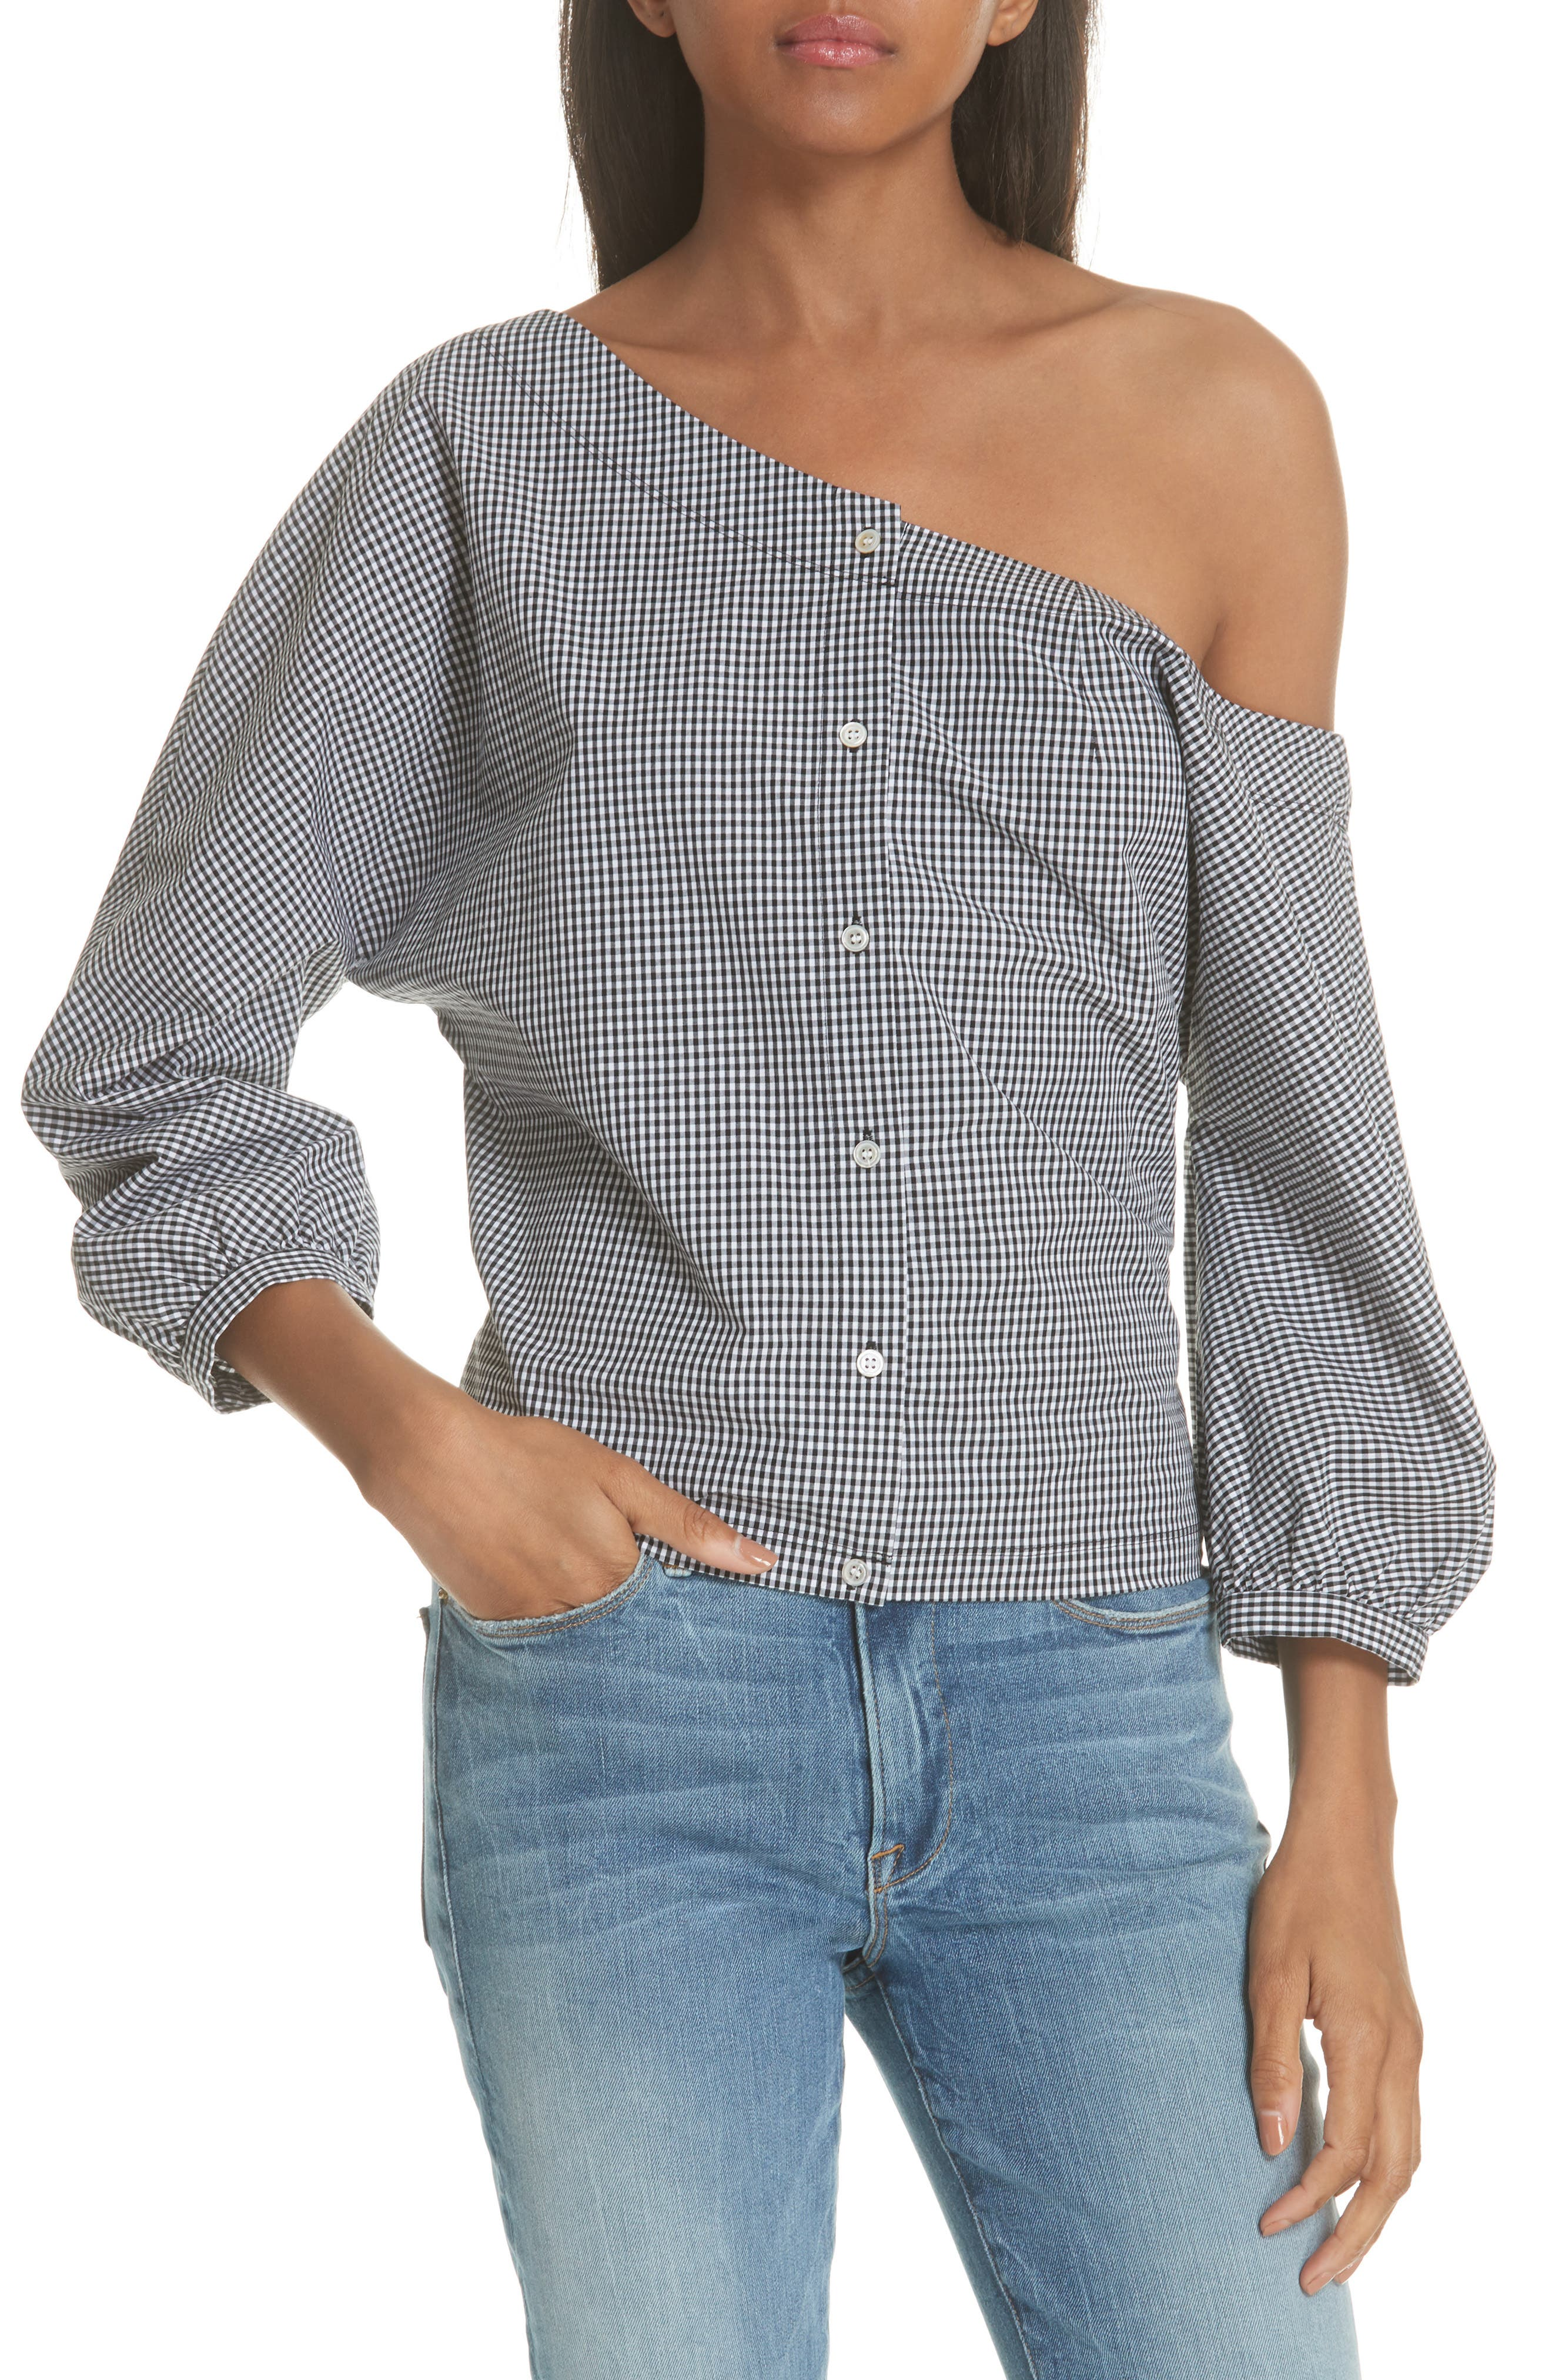 Gingham Tie Back Off the Shoulder Top,                             Main thumbnail 1, color,                             012